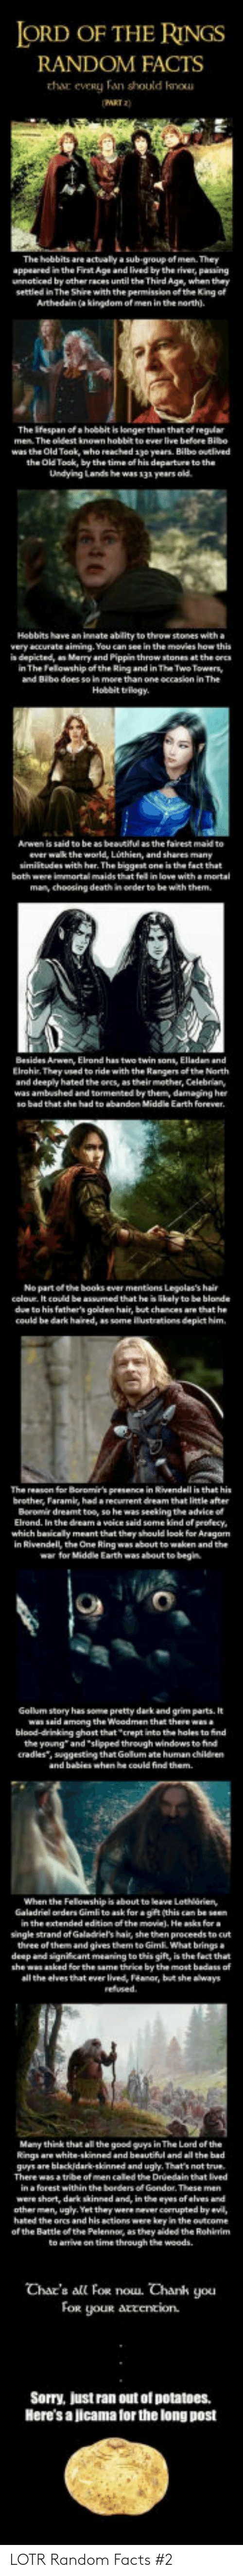 """depict: ORD OF THE RINGS  RANDOM FACTS  thar  eveRy Fan should kou  AKT 2)  The hobbits are actually a sub-group of men. They  appeared in the First Age and lived by the river, pawing  unnoticed by other races until the Third Age, when they  settled in The Shire with the penmission of th. Kng of  Arthedain (a kingdom of men in the north).  The ifespan of a hobbit is longerthan that of regular  The oldest known  was the Old Took, who reached 1yo years. Bilbo ouelived  the Old Took, by the time of his departure to the  Undying Lands he was 13a years old  Hebbits have an innate ablity to theow stones with a  very accurate aiming. You can see in the movies how this  s depicted, an Merry and Pippin throw stones at the ores  n The Felowship of the Ring and in The Two Towersy  and Bibe does so in  Hobbit trilogy.  to be as beautiful  as the fairest maid to  ever wak the world, Lothien, and shares many  similitudes with her. The biggest one is the fact that  both were immortal maids that fel in love with amortal  man, choosing death in oeder to be with them.  Arwen, Elrond has  Elrohir They used to ride with the Rangers of the North  and deeply hated the orcs, as their mother, Celebrian,  was ambushed and tormented by them, damaging her  Earth forever  No partofthe books ever mentiens Legolas's hair  celoue. It could be assumed that he is likely to be blonde  due to his father's golden hair, but chances are that he  could be dark haired, as some ilustrations depict him  The reason for Boromir's presence in Rivendell is that his  brother, Faramis, had a recurrent dream that little after  Beromir dreamt toe, so he was seeking the advice o  Elrond. In the dream a veice said some kind ef profecy  which basicaly meant that they should look for Aragan  in Rivendell, the One Ring was about to waken and the  war for Middle Earth was about te begin  Gollum story has some pretty dark and grim parts. It  among the  blood-drinking ghost that crept into the holes to find  the young"""" and"""